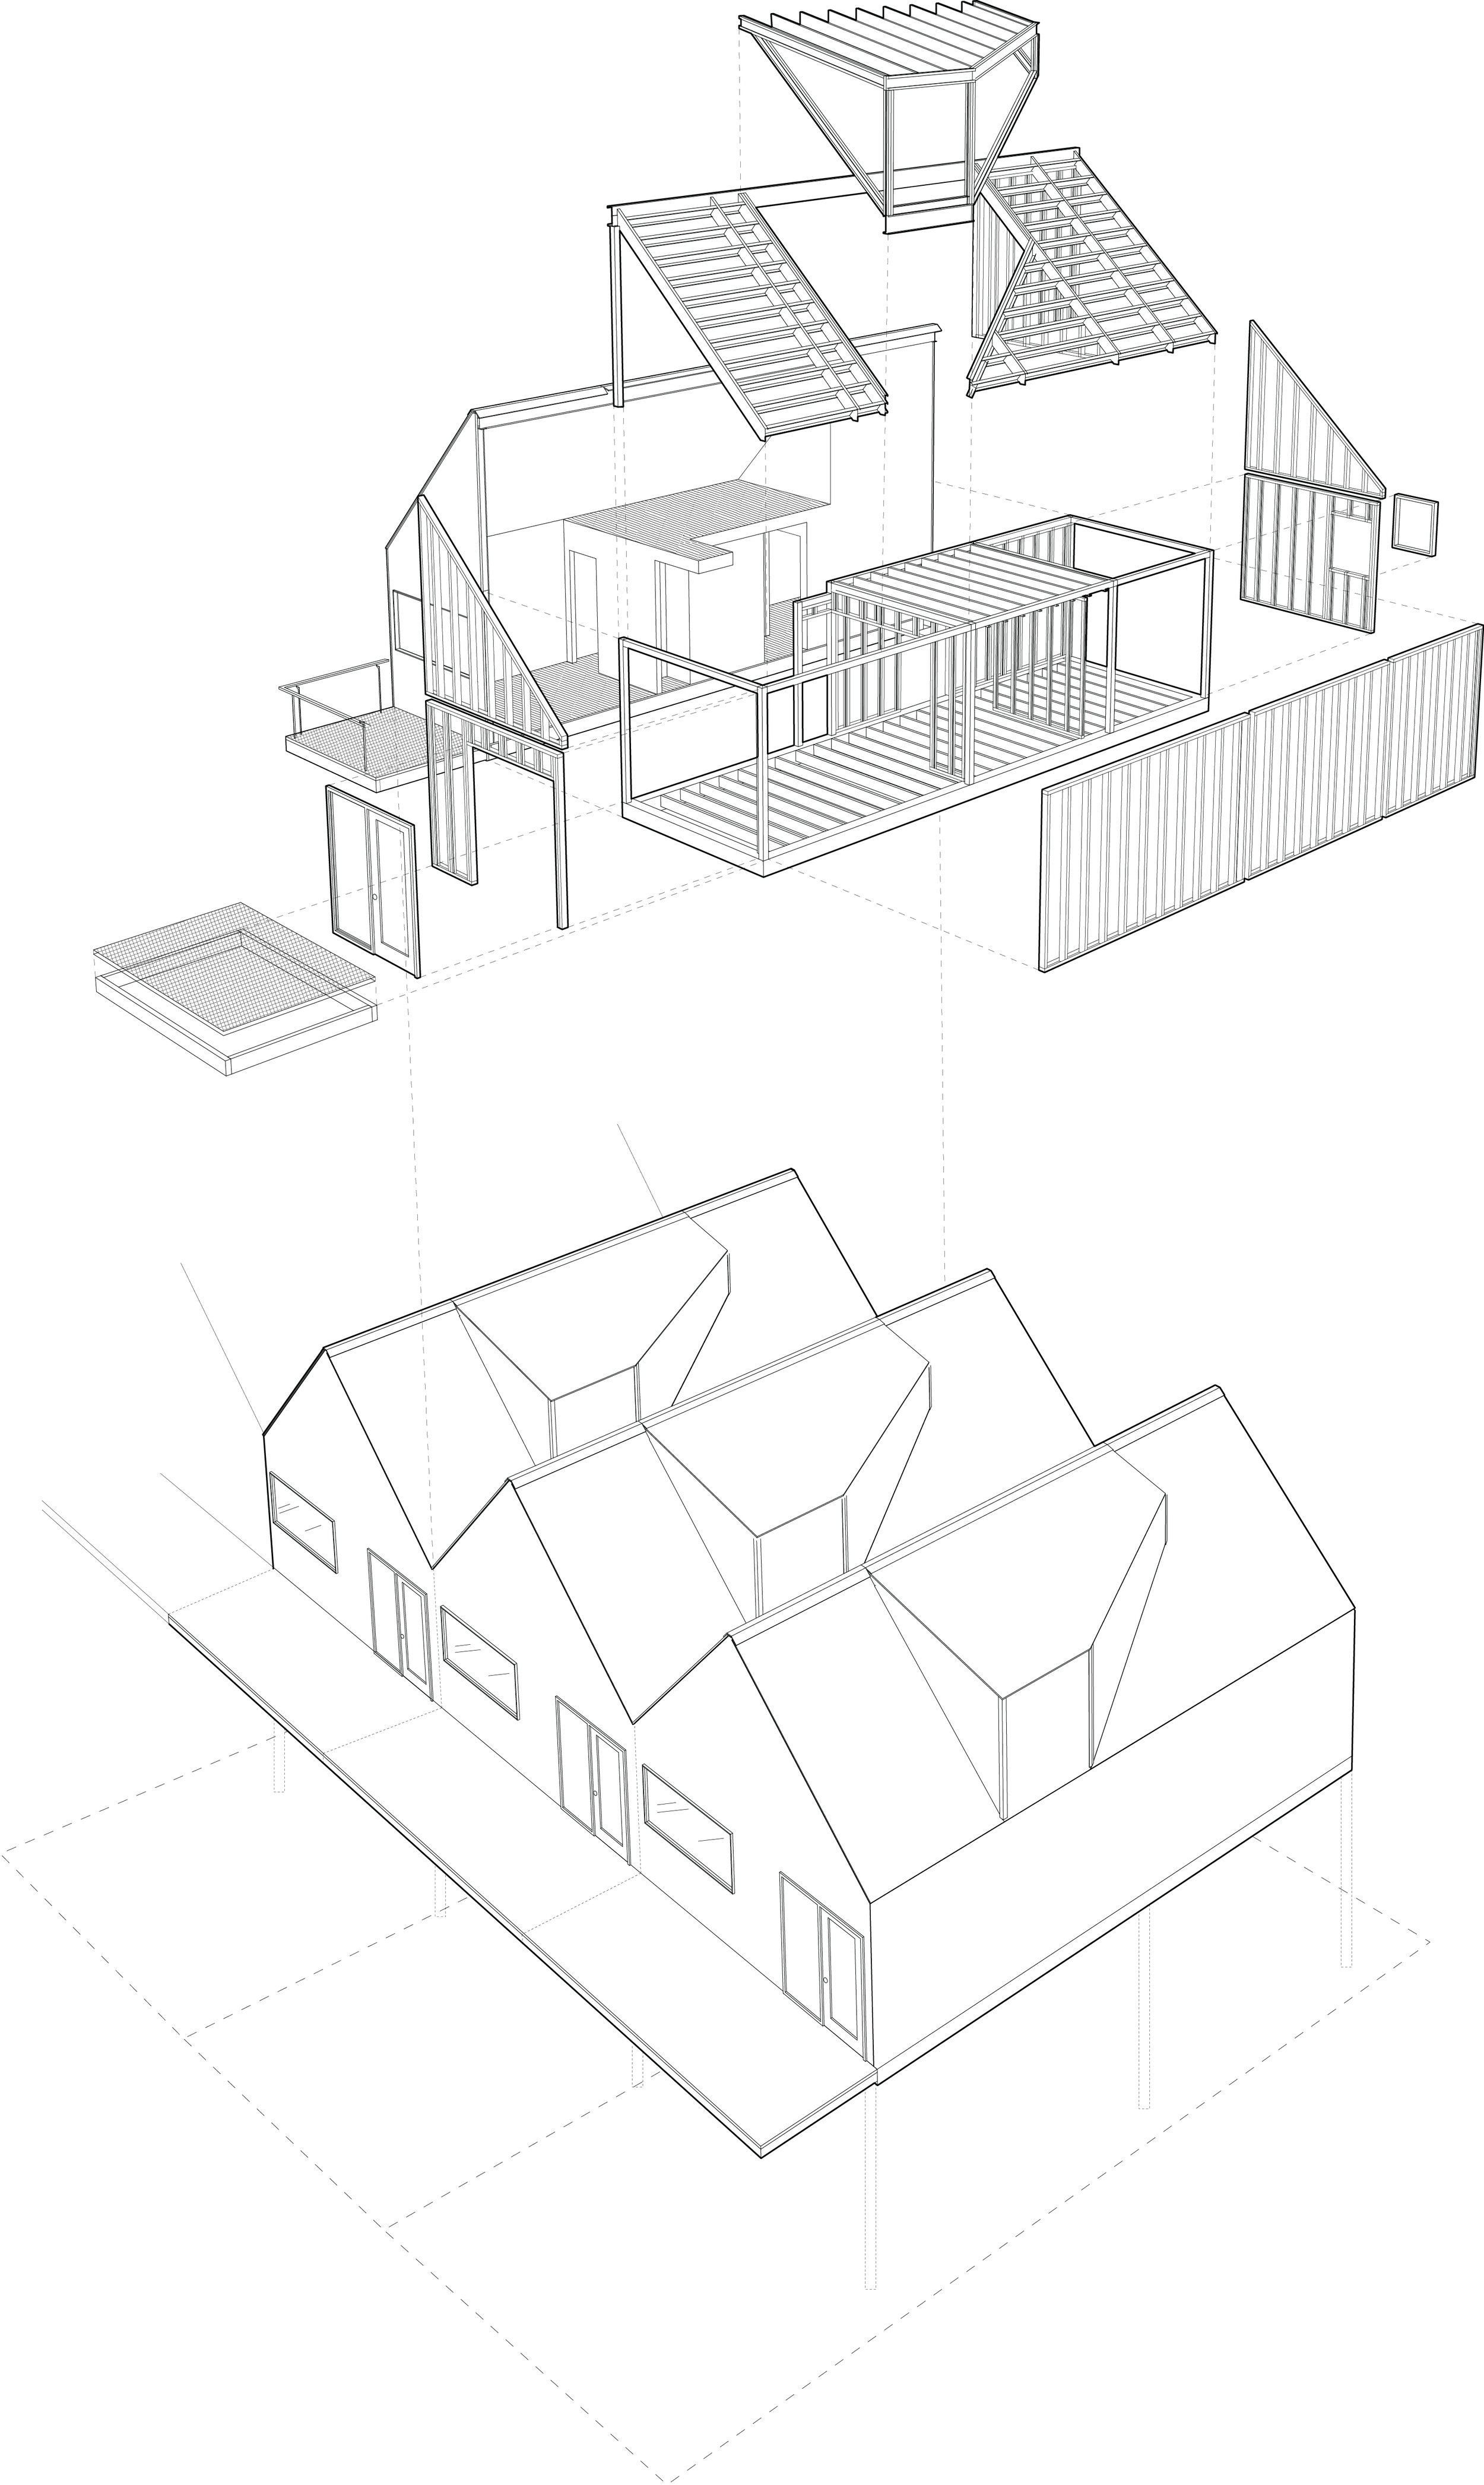 Each home consists of two, 10' wide by 35' long prefabricated modules and a dormer.